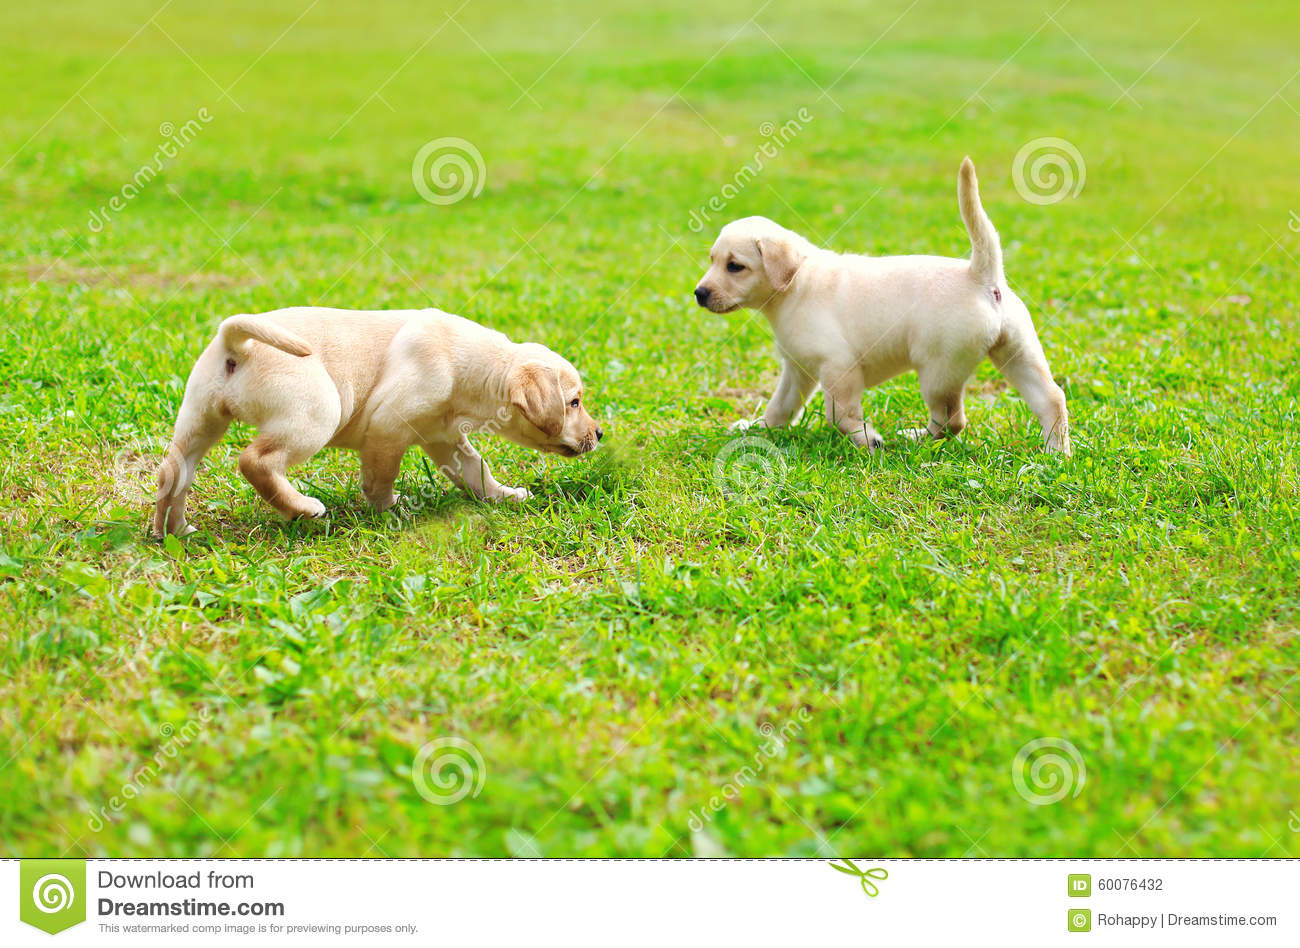 Labrador Dogs Pictures Free Download